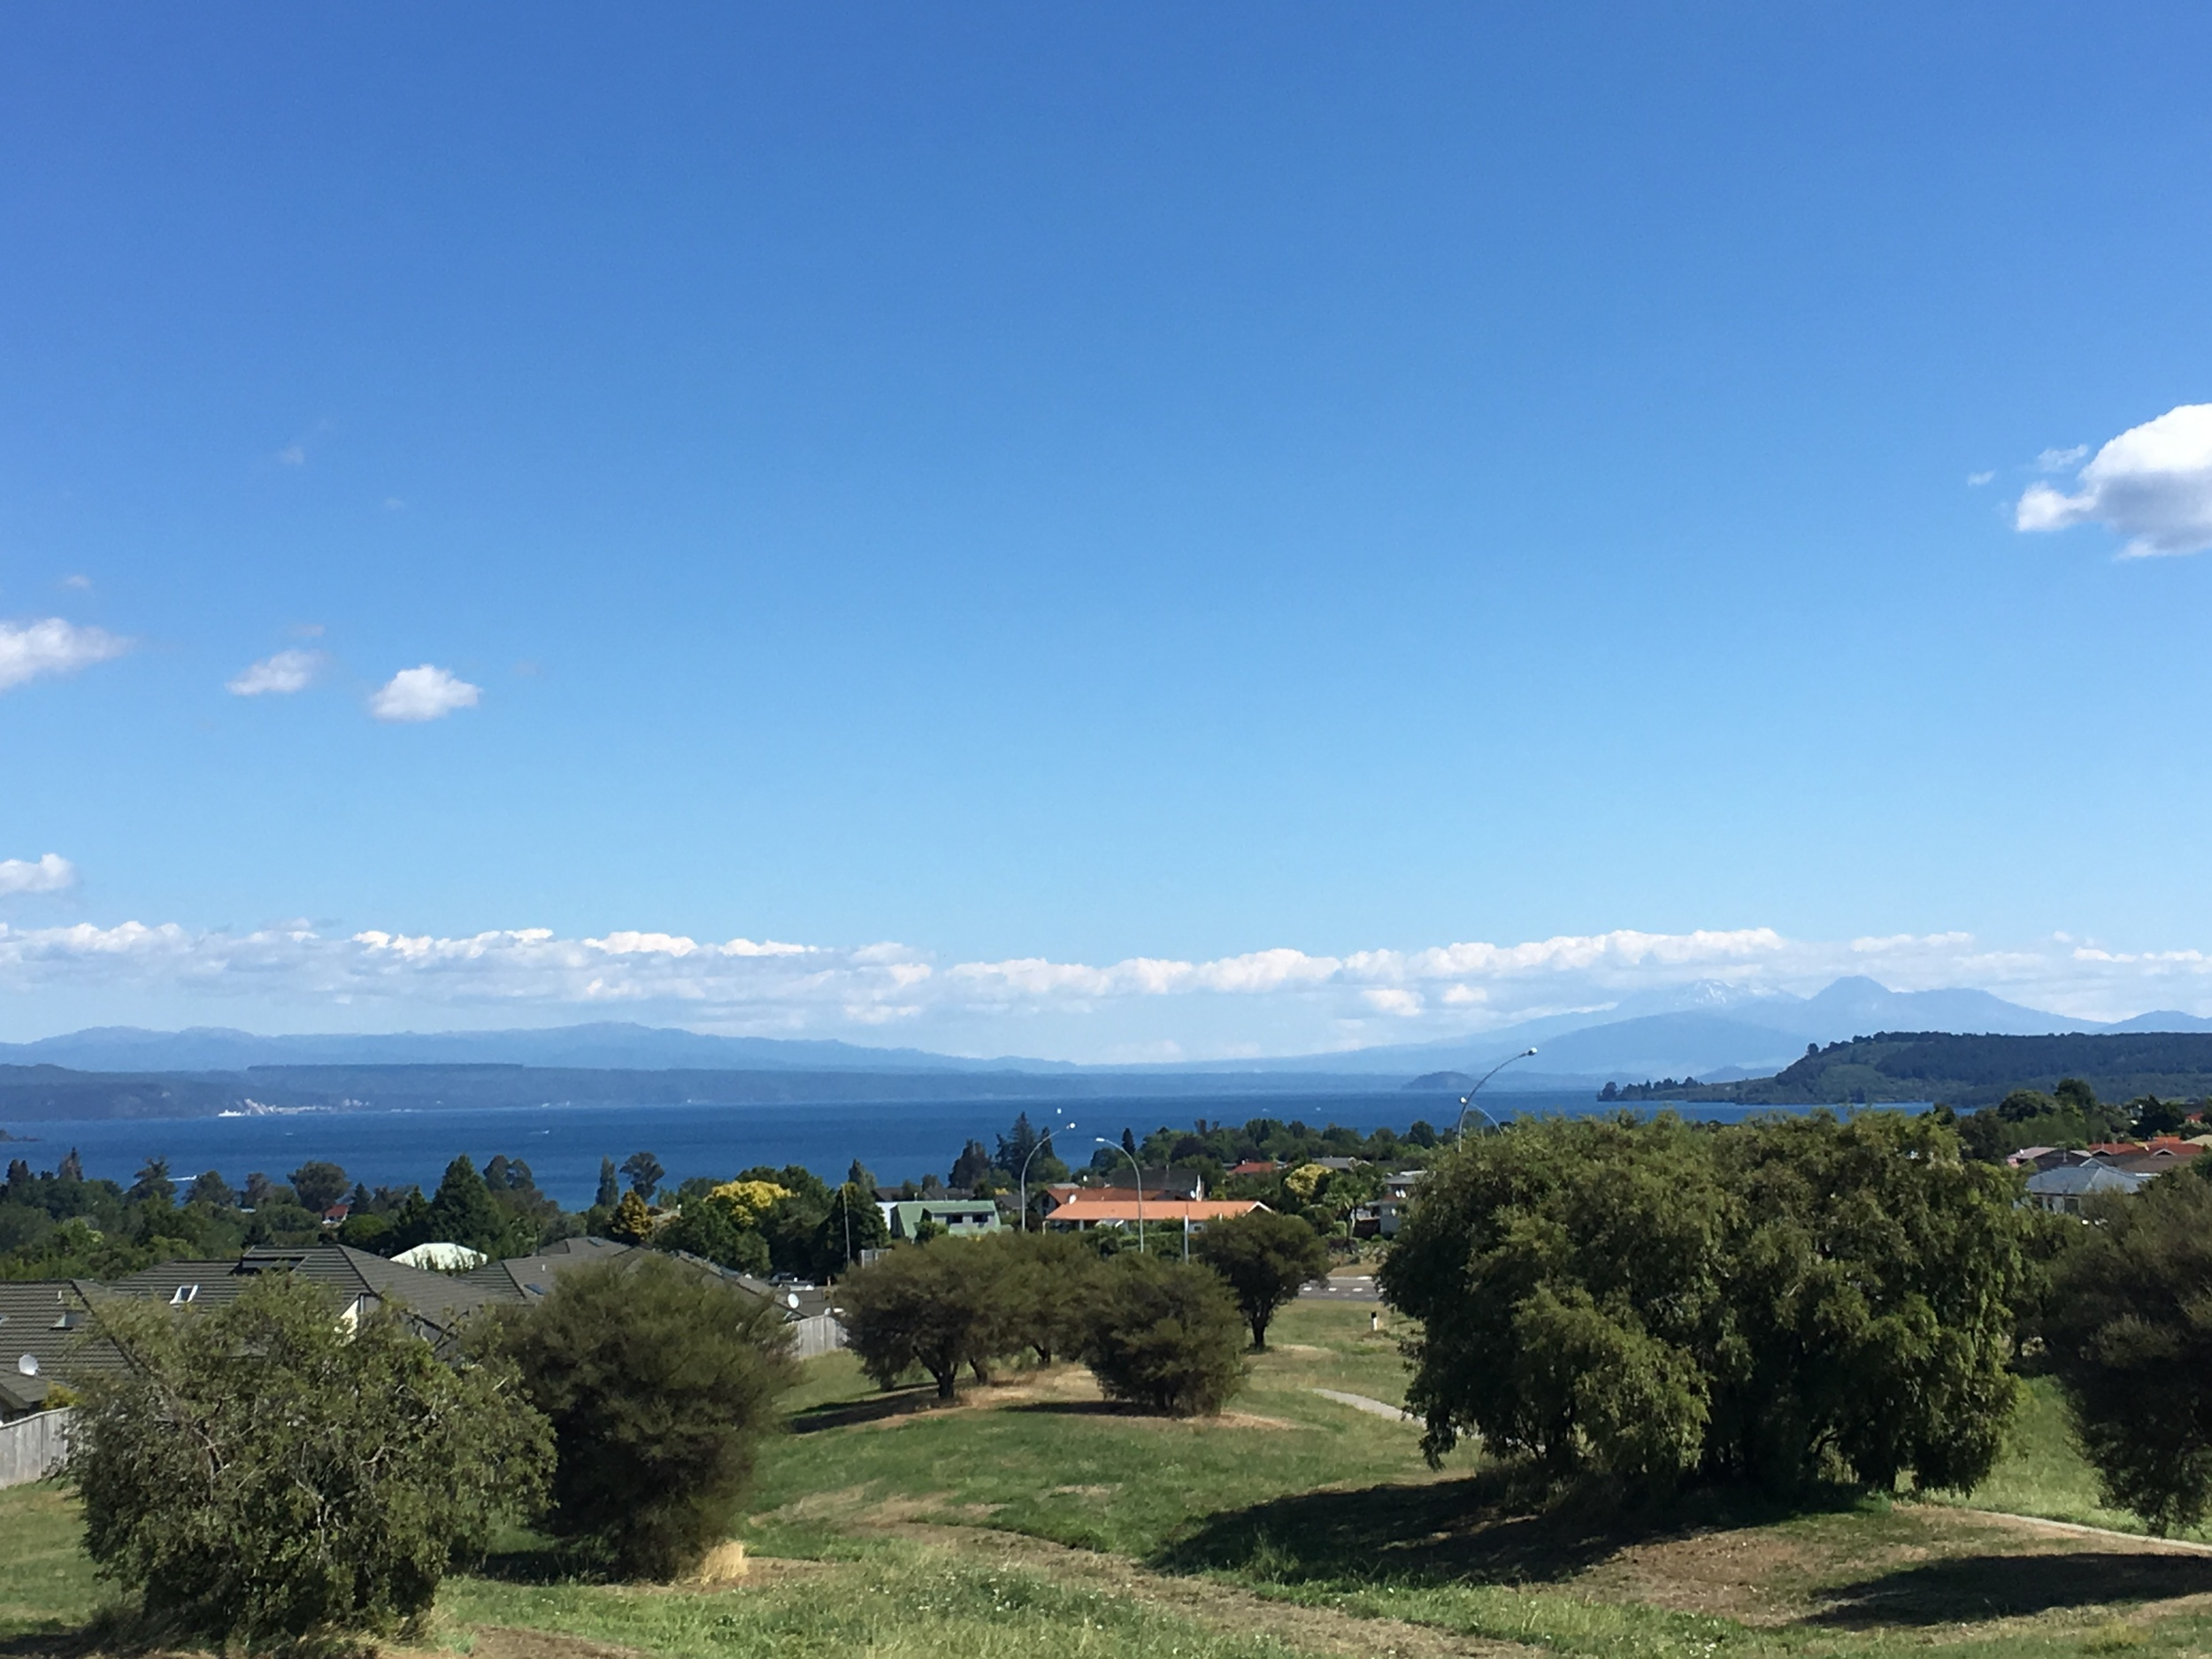 Stopped by Lake Taupo on our drive from the airport